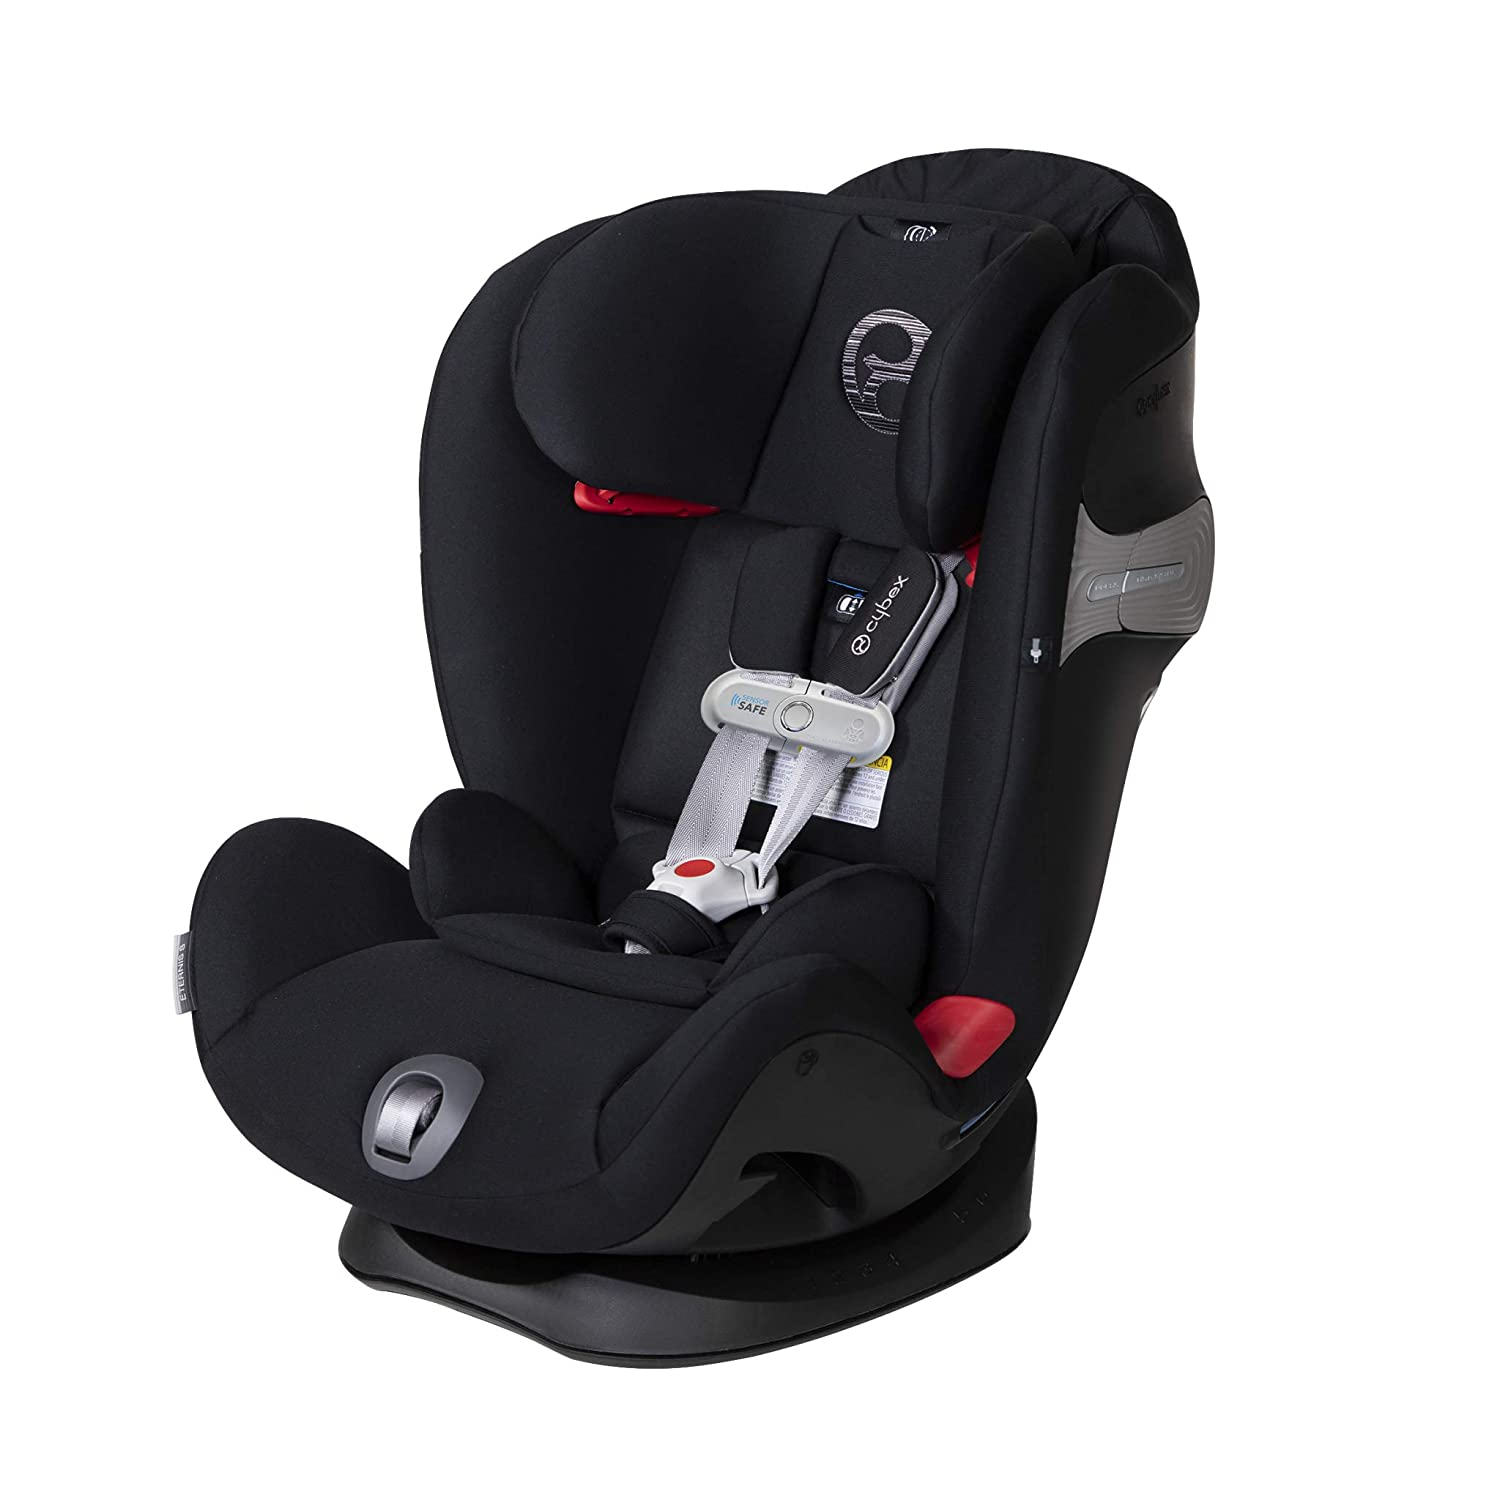 Cybex Eternis S All-in-One Car Seat with